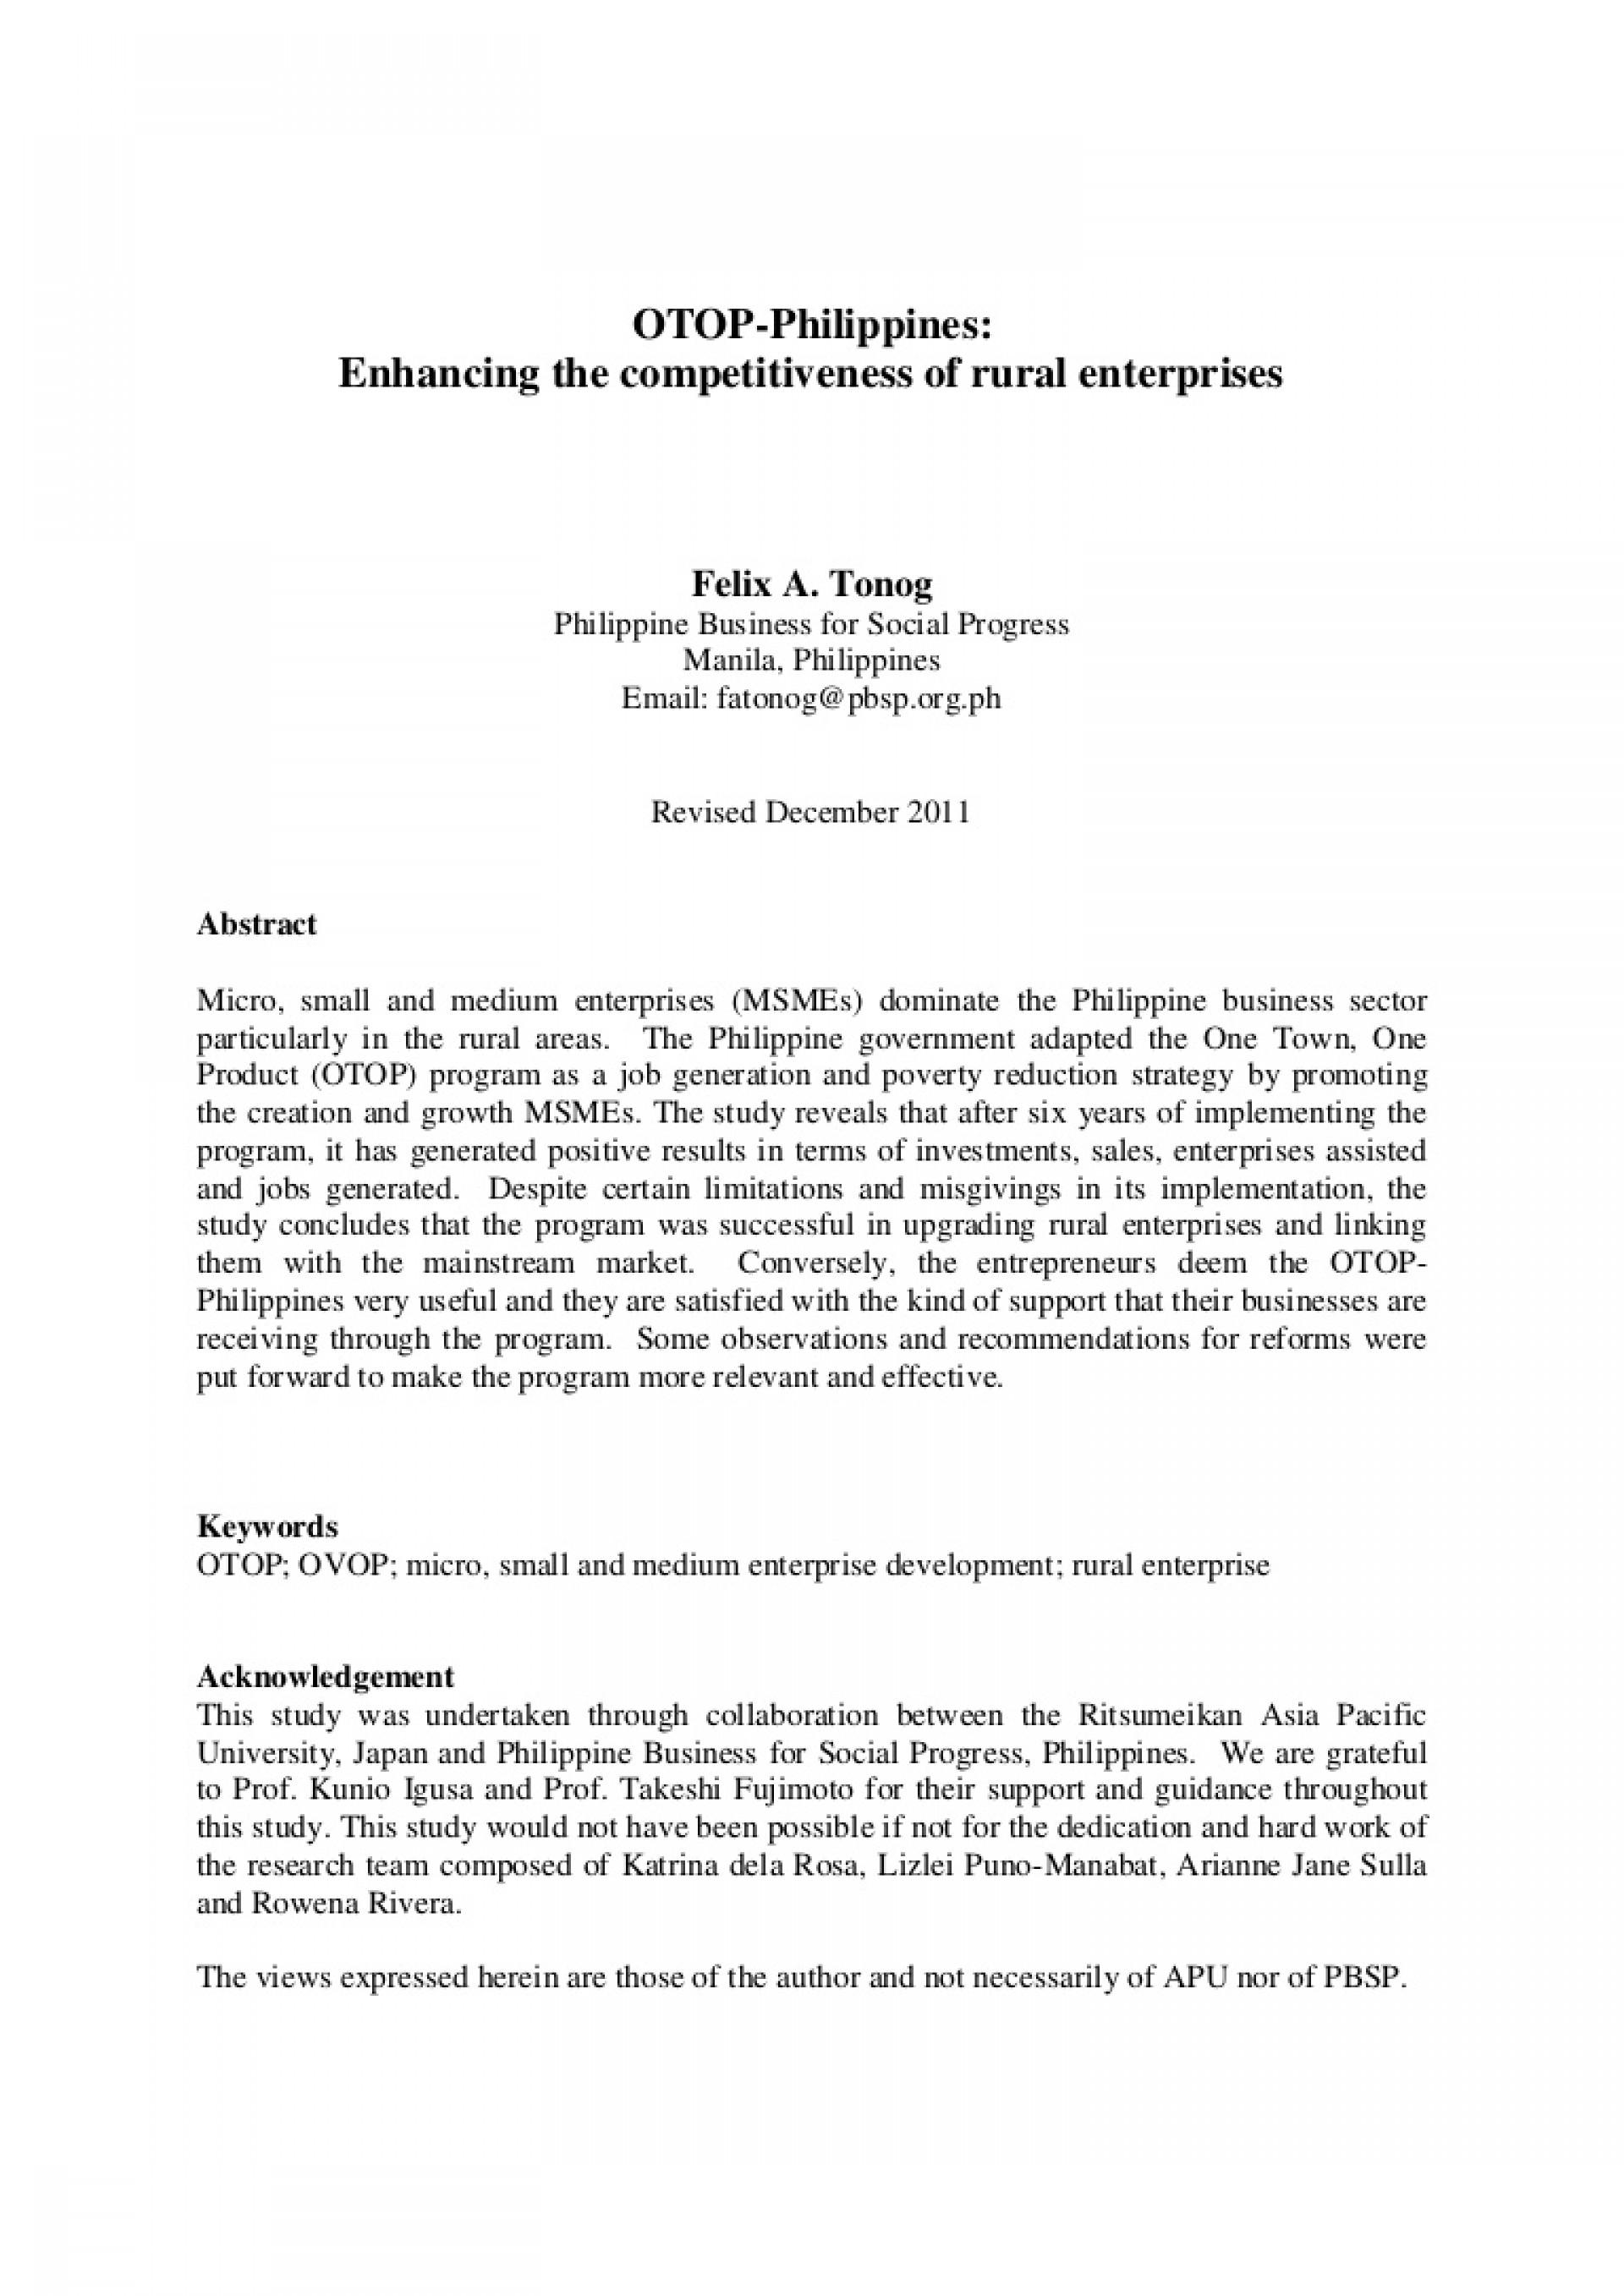 011 Research Paper Theotop Philippines2011a4 Phpapp02 Thumbnail Poverty In The Philippines Remarkable Abstract 1920